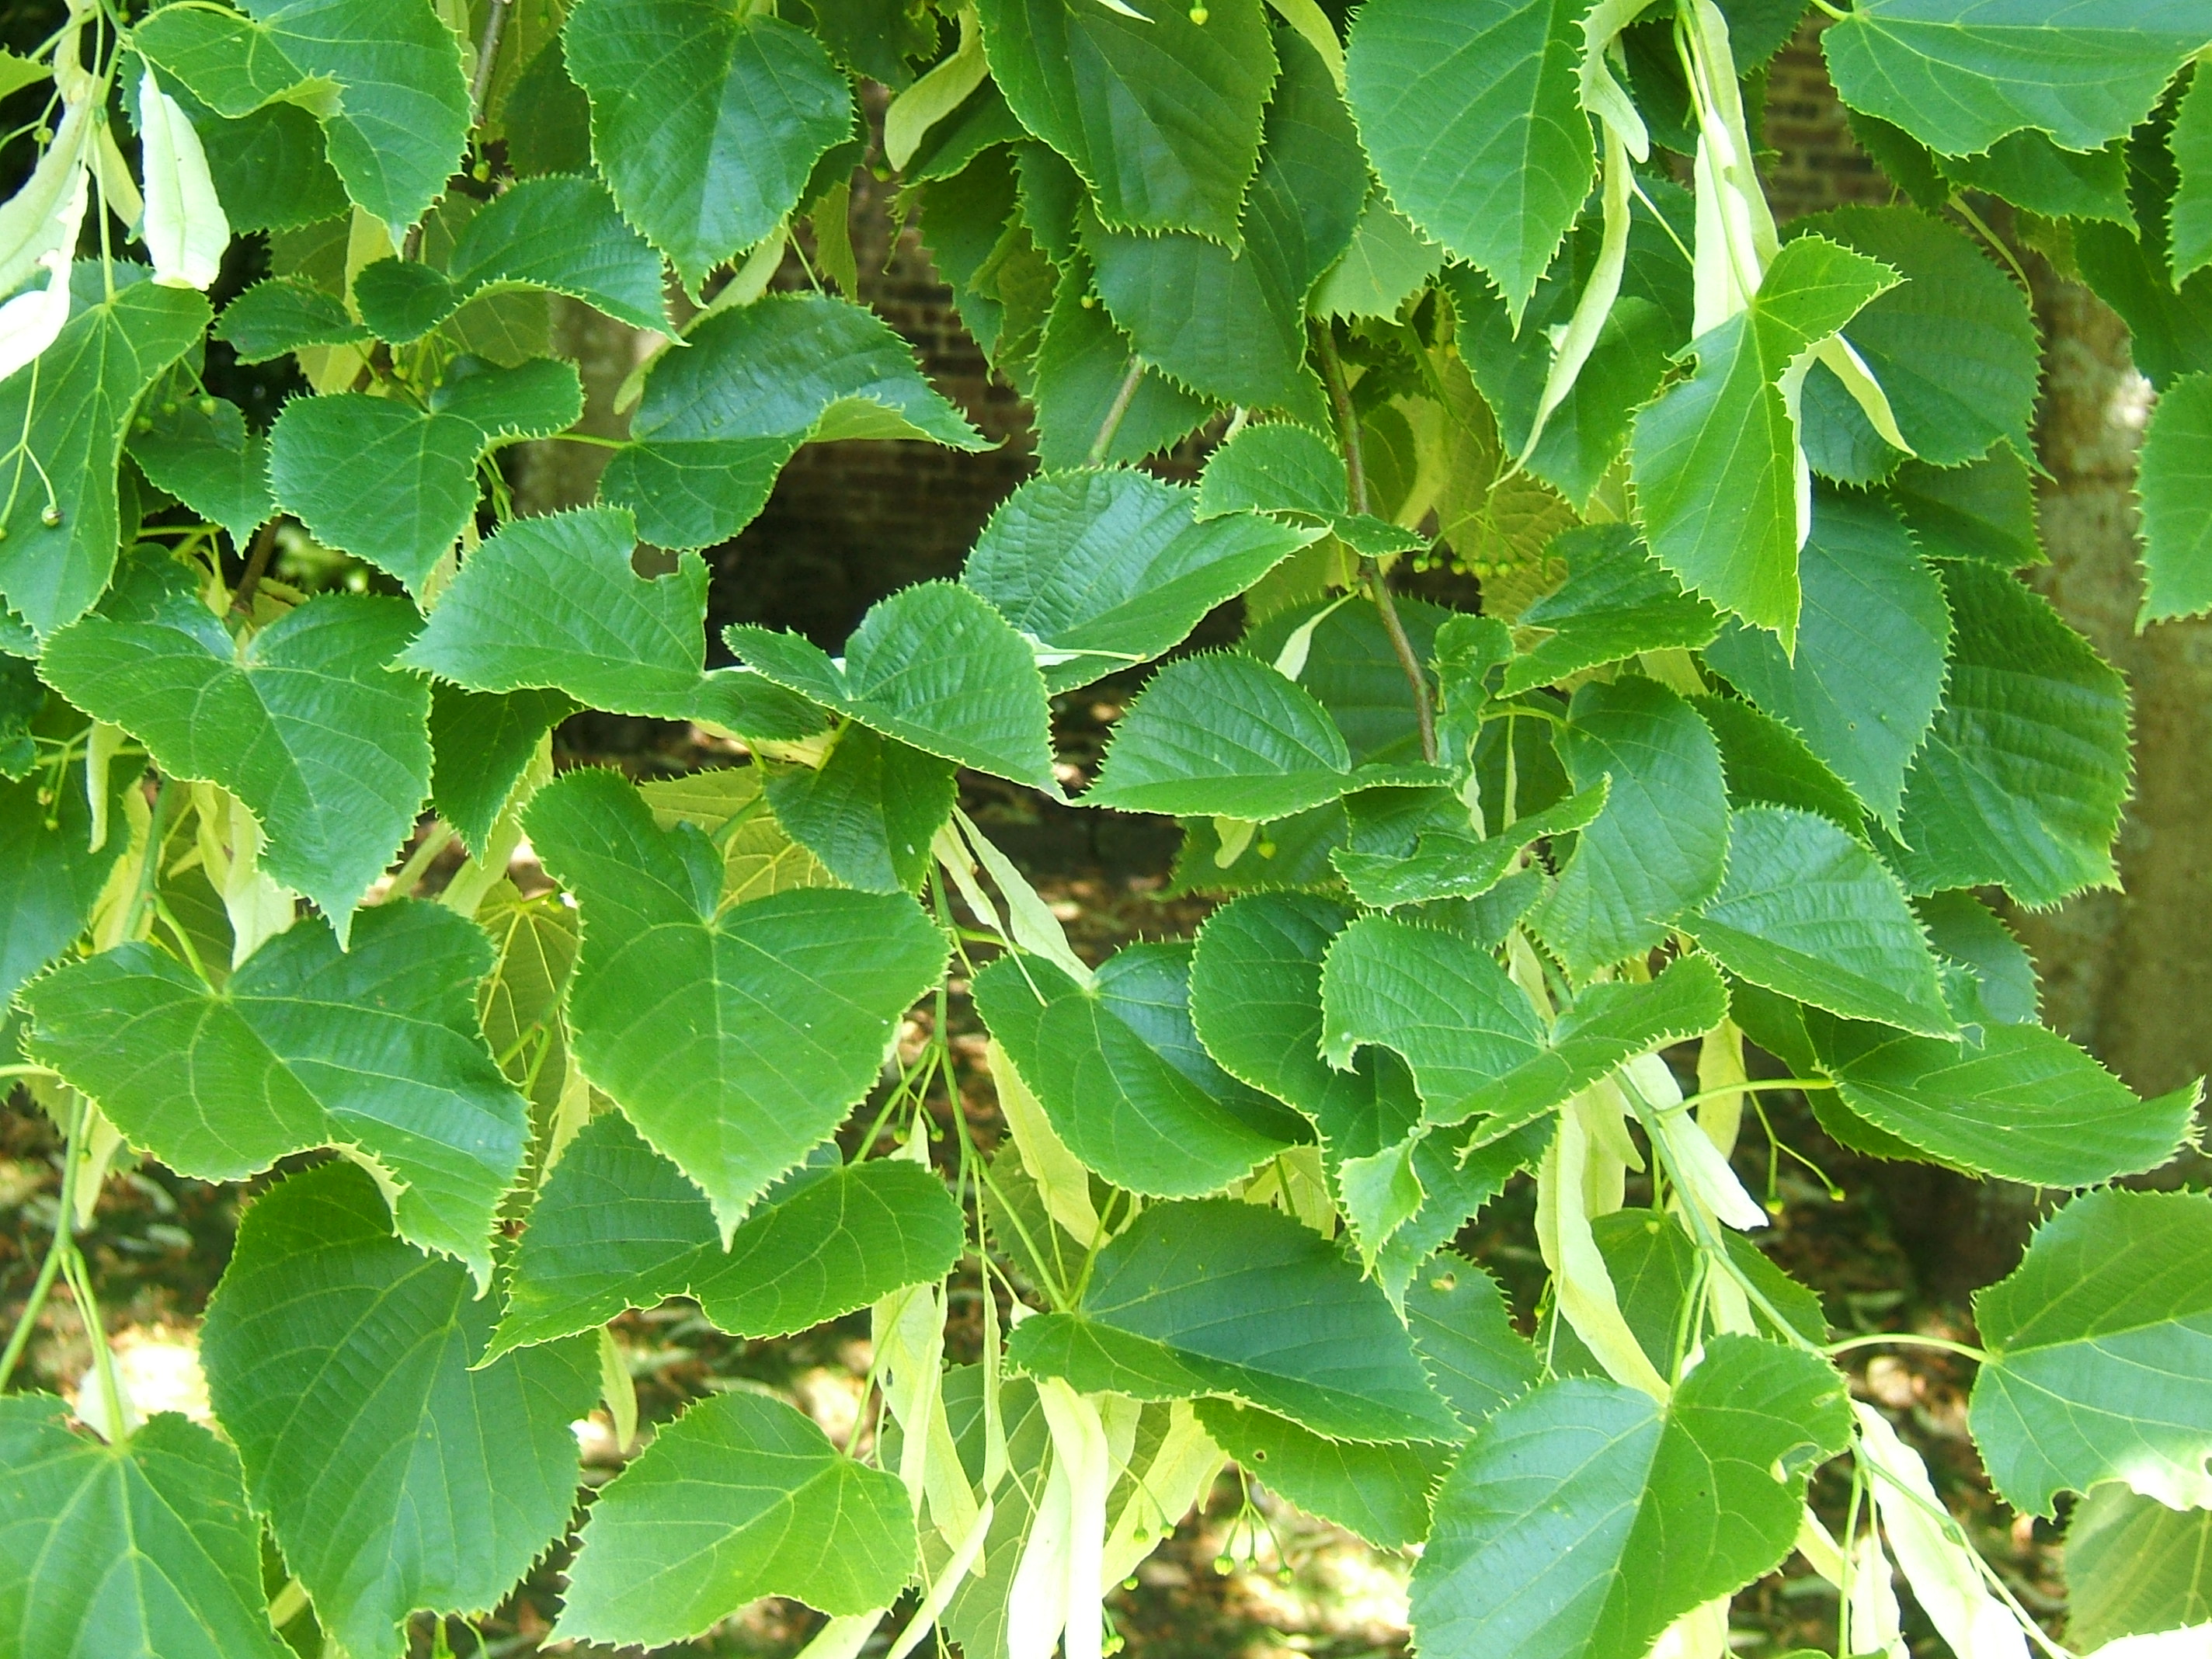 http://upload.wikimedia.org/wikipedia/commons/e/e6/Tilia_henryana.jpg